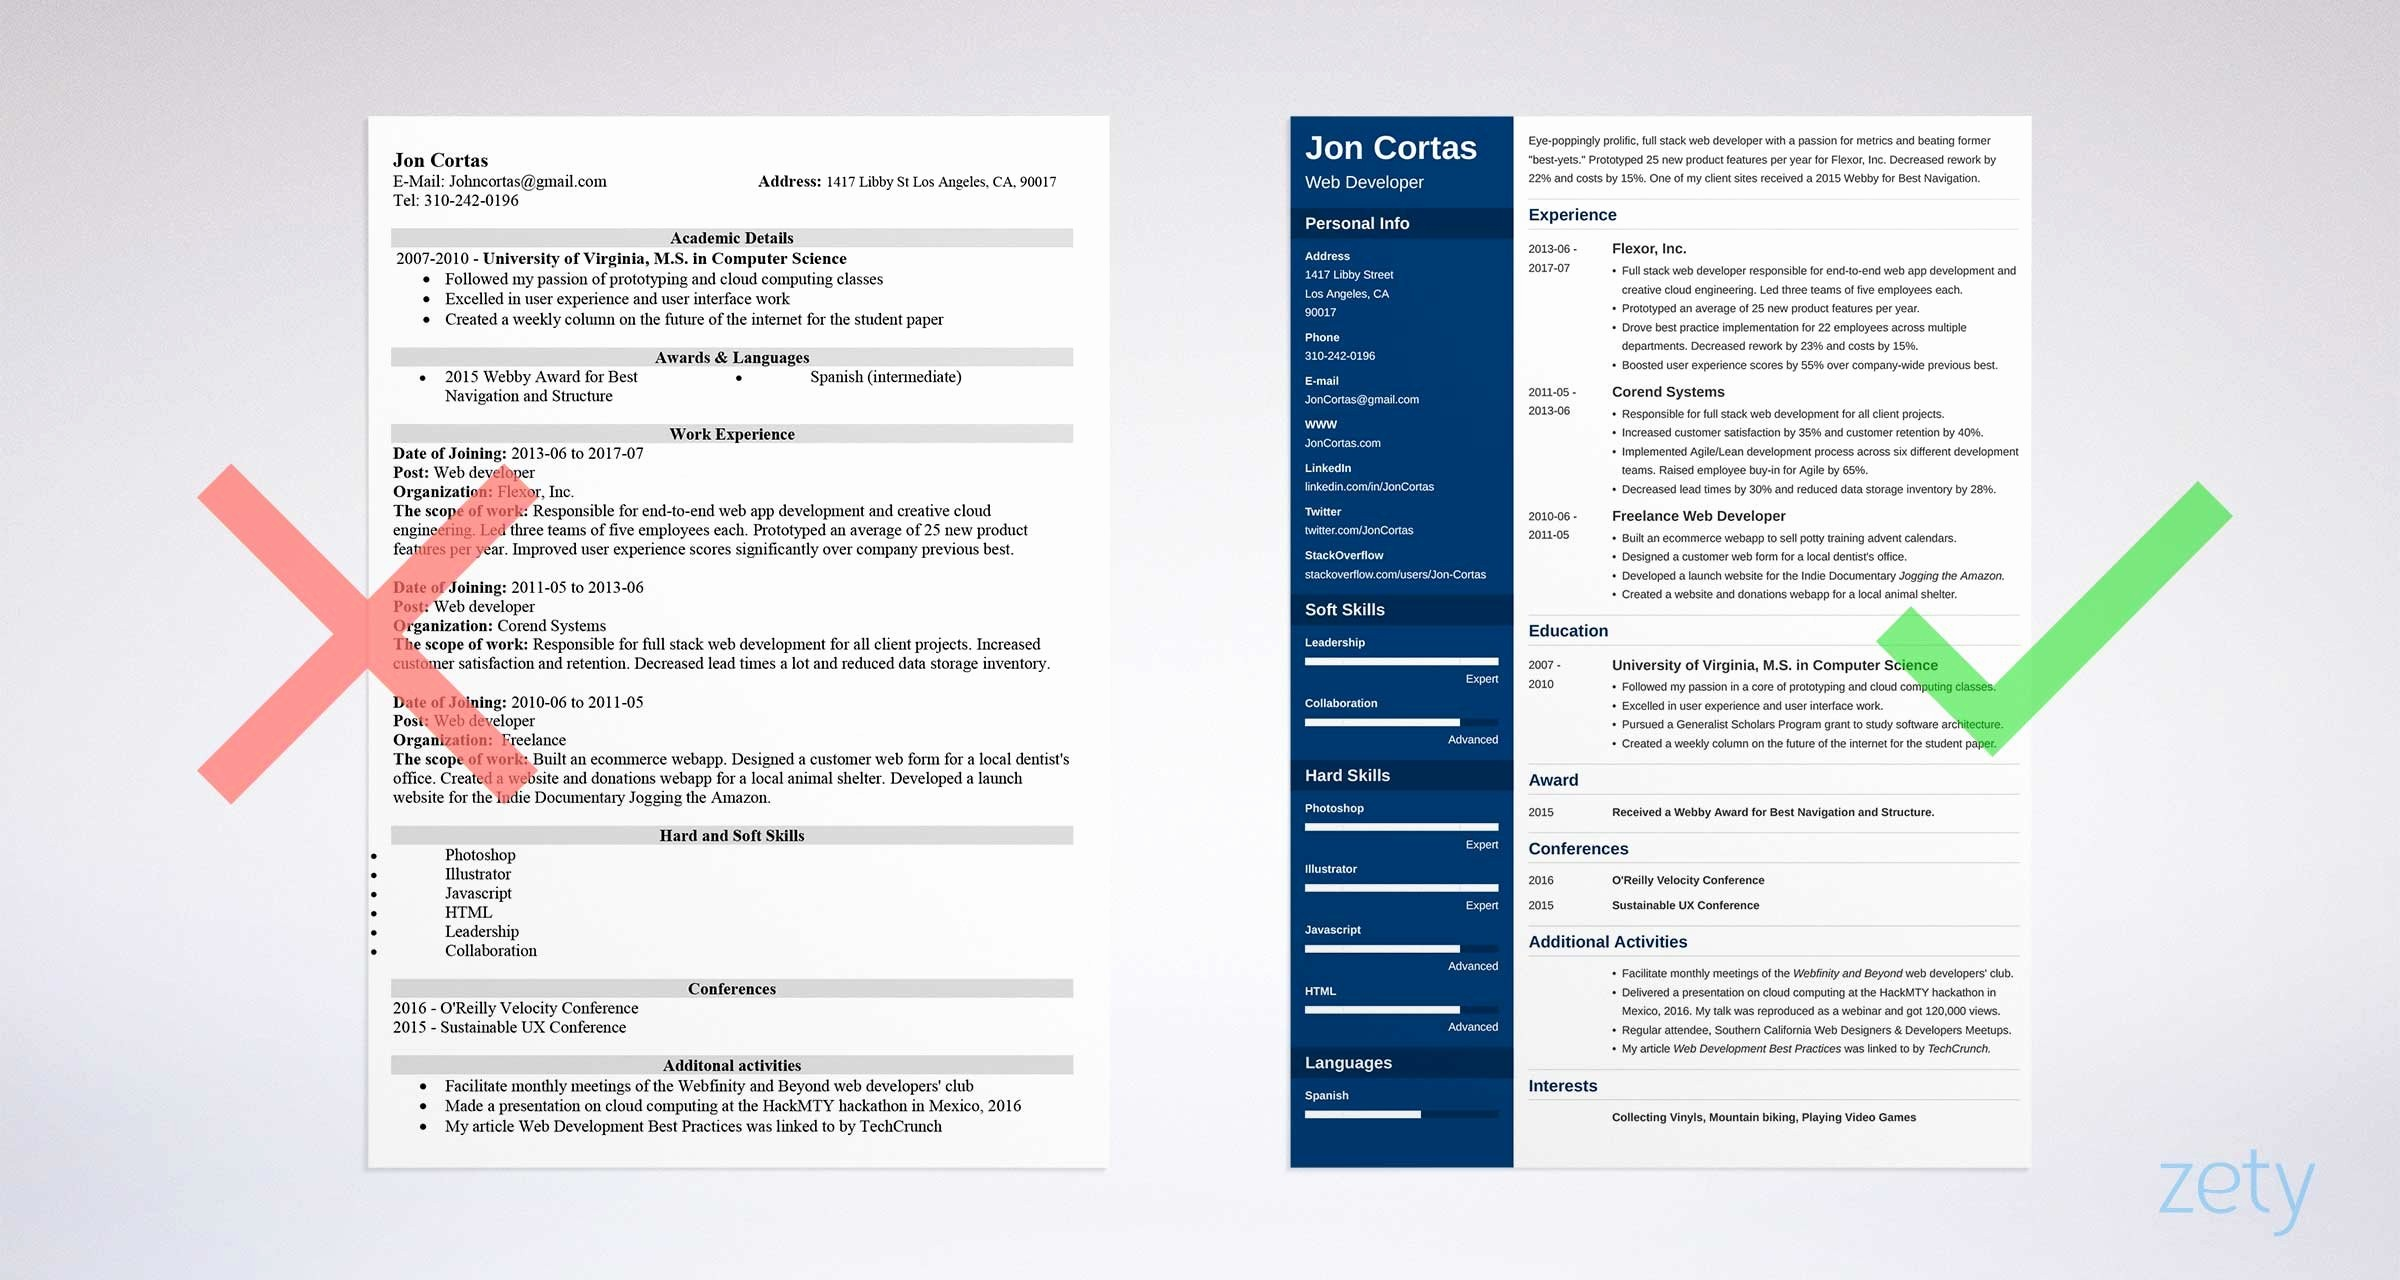 Resume Templates Microsoft Word Free Best Of Free Resume Templates for Word 15 Cv Resume formats to